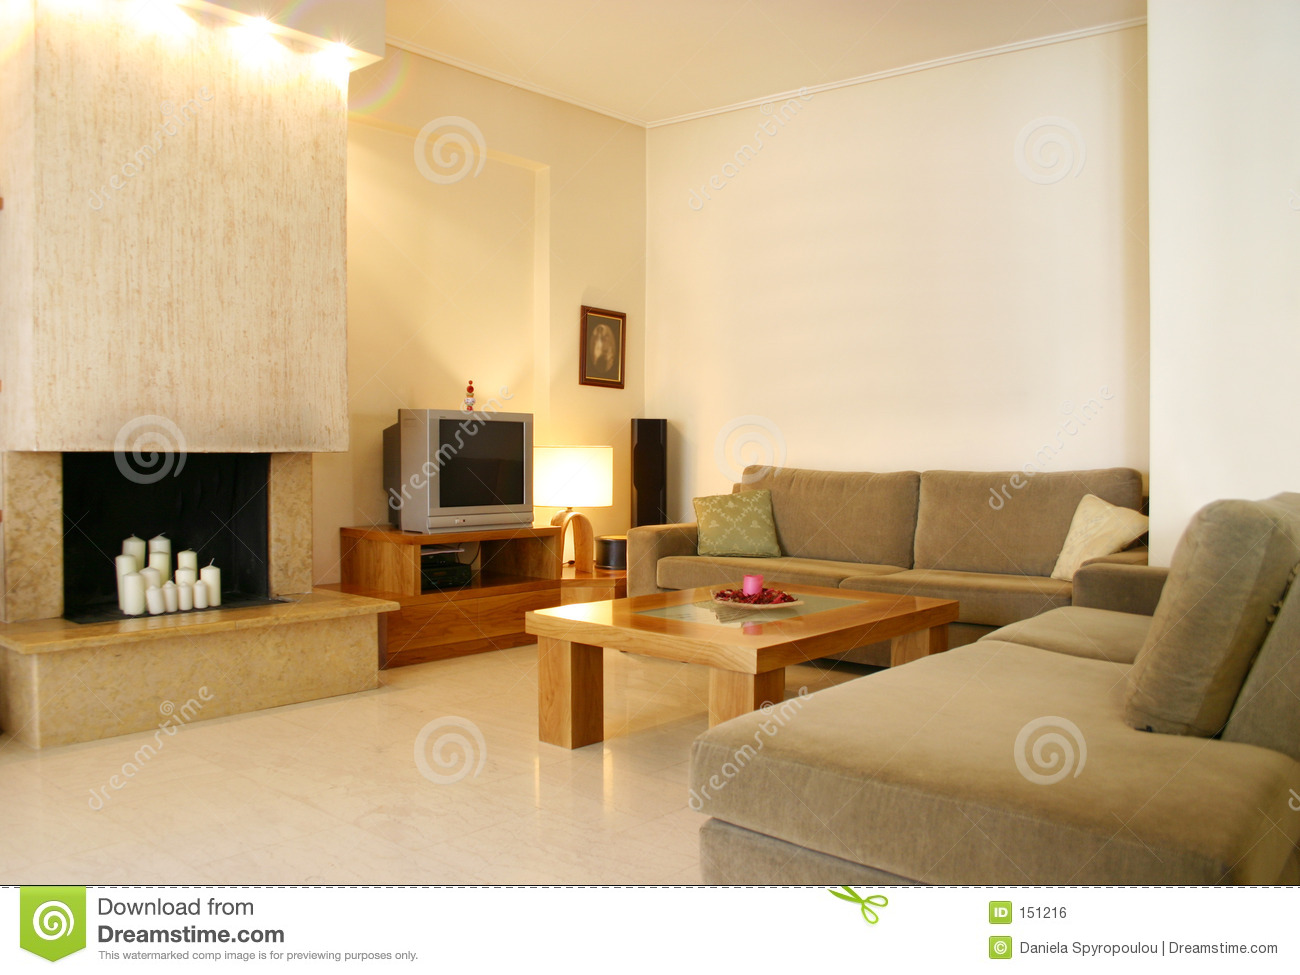 Home interior design stock photo image of modern for Interior designs photos